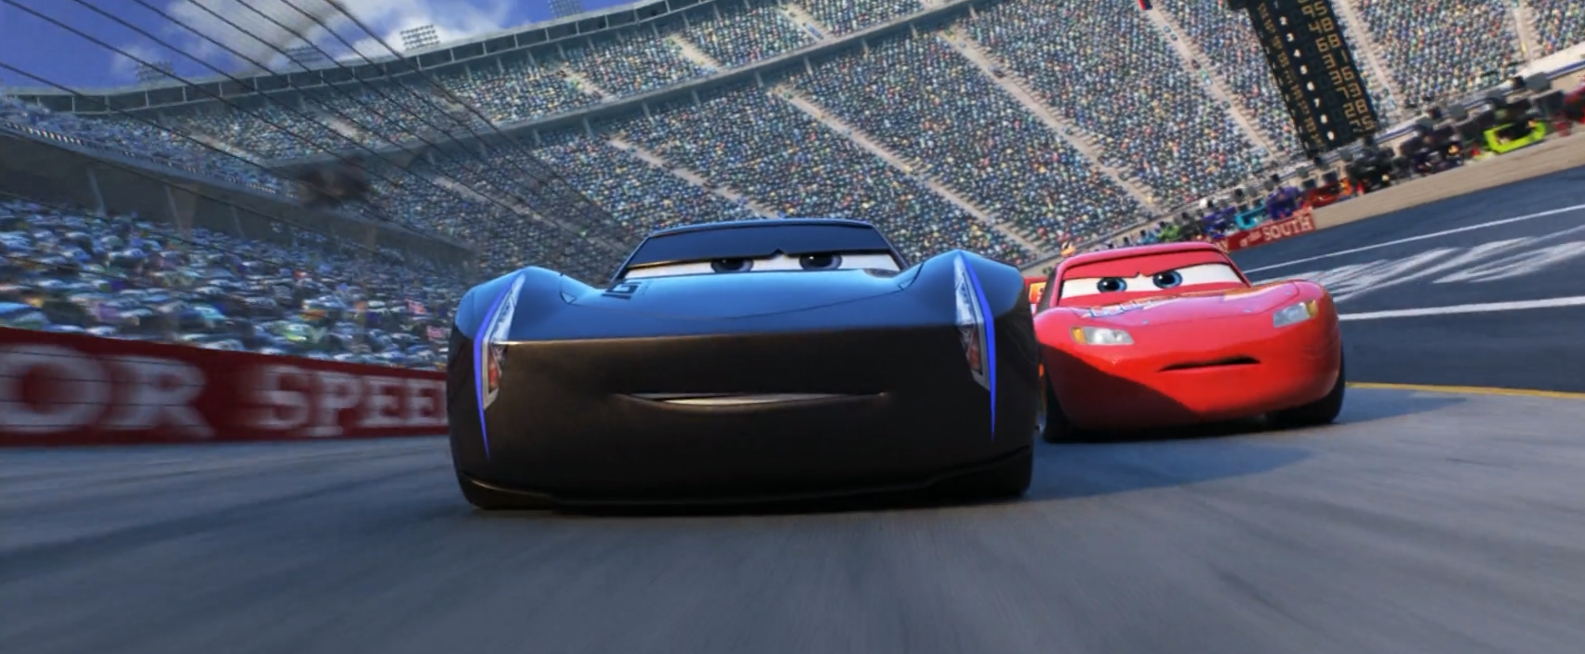 Cars 3 Movie Review